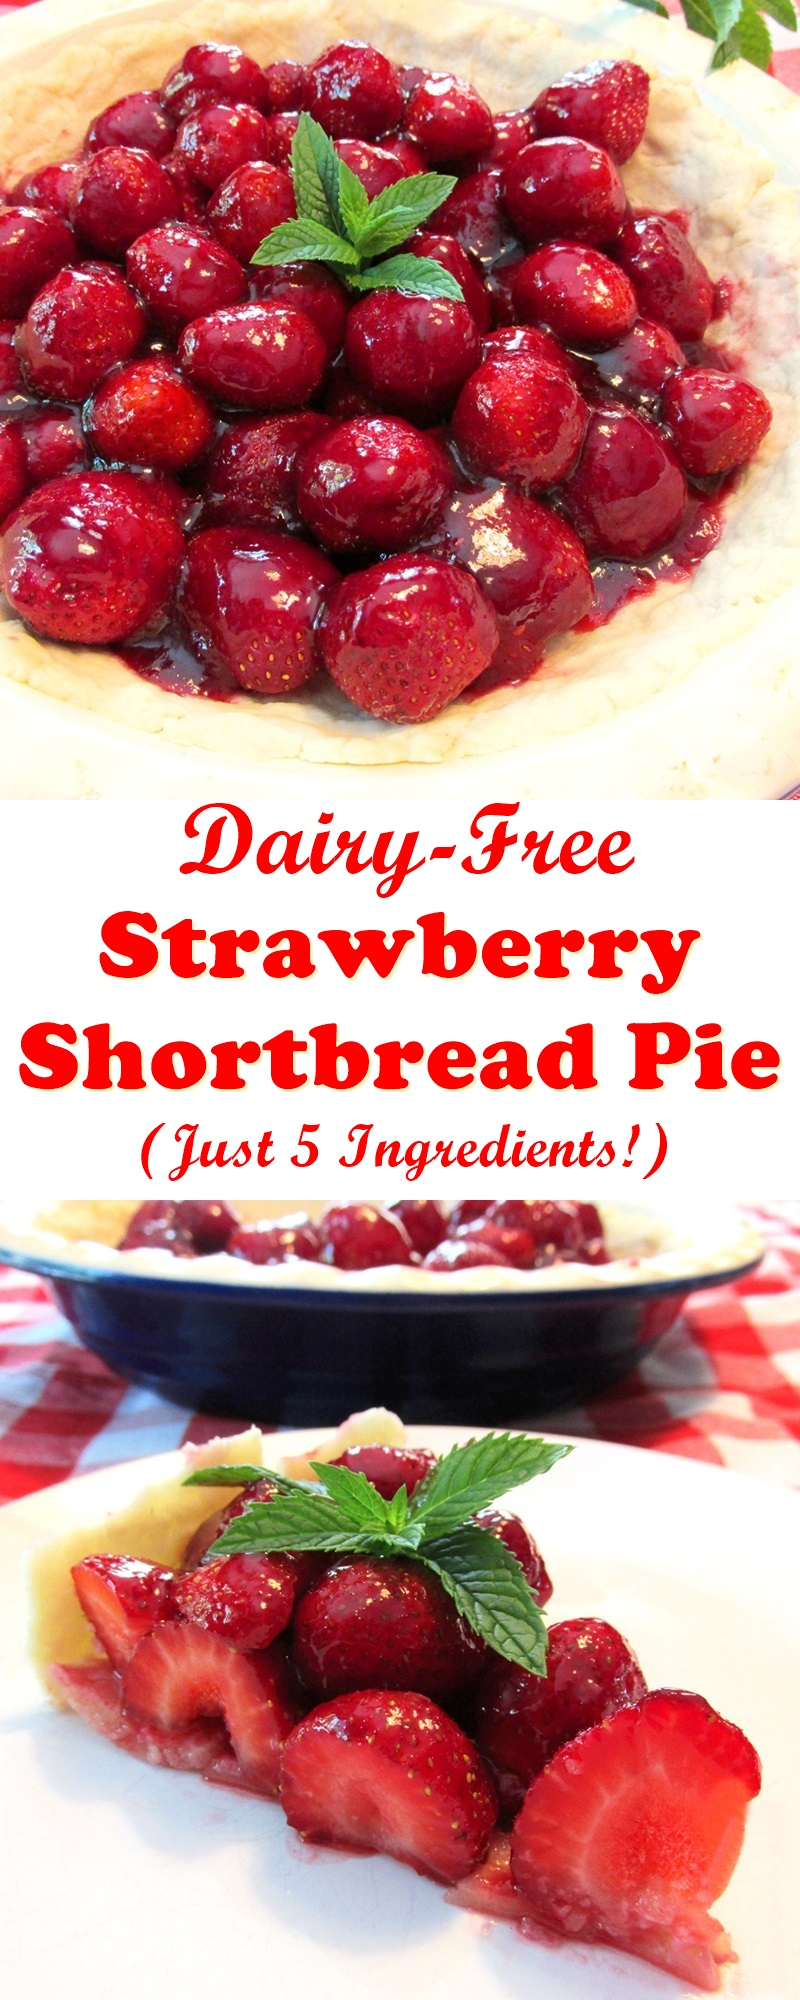 Strawberry Shortbread Pie Recipe (dairy-free, vegan, easy and just 5 ingredients!)